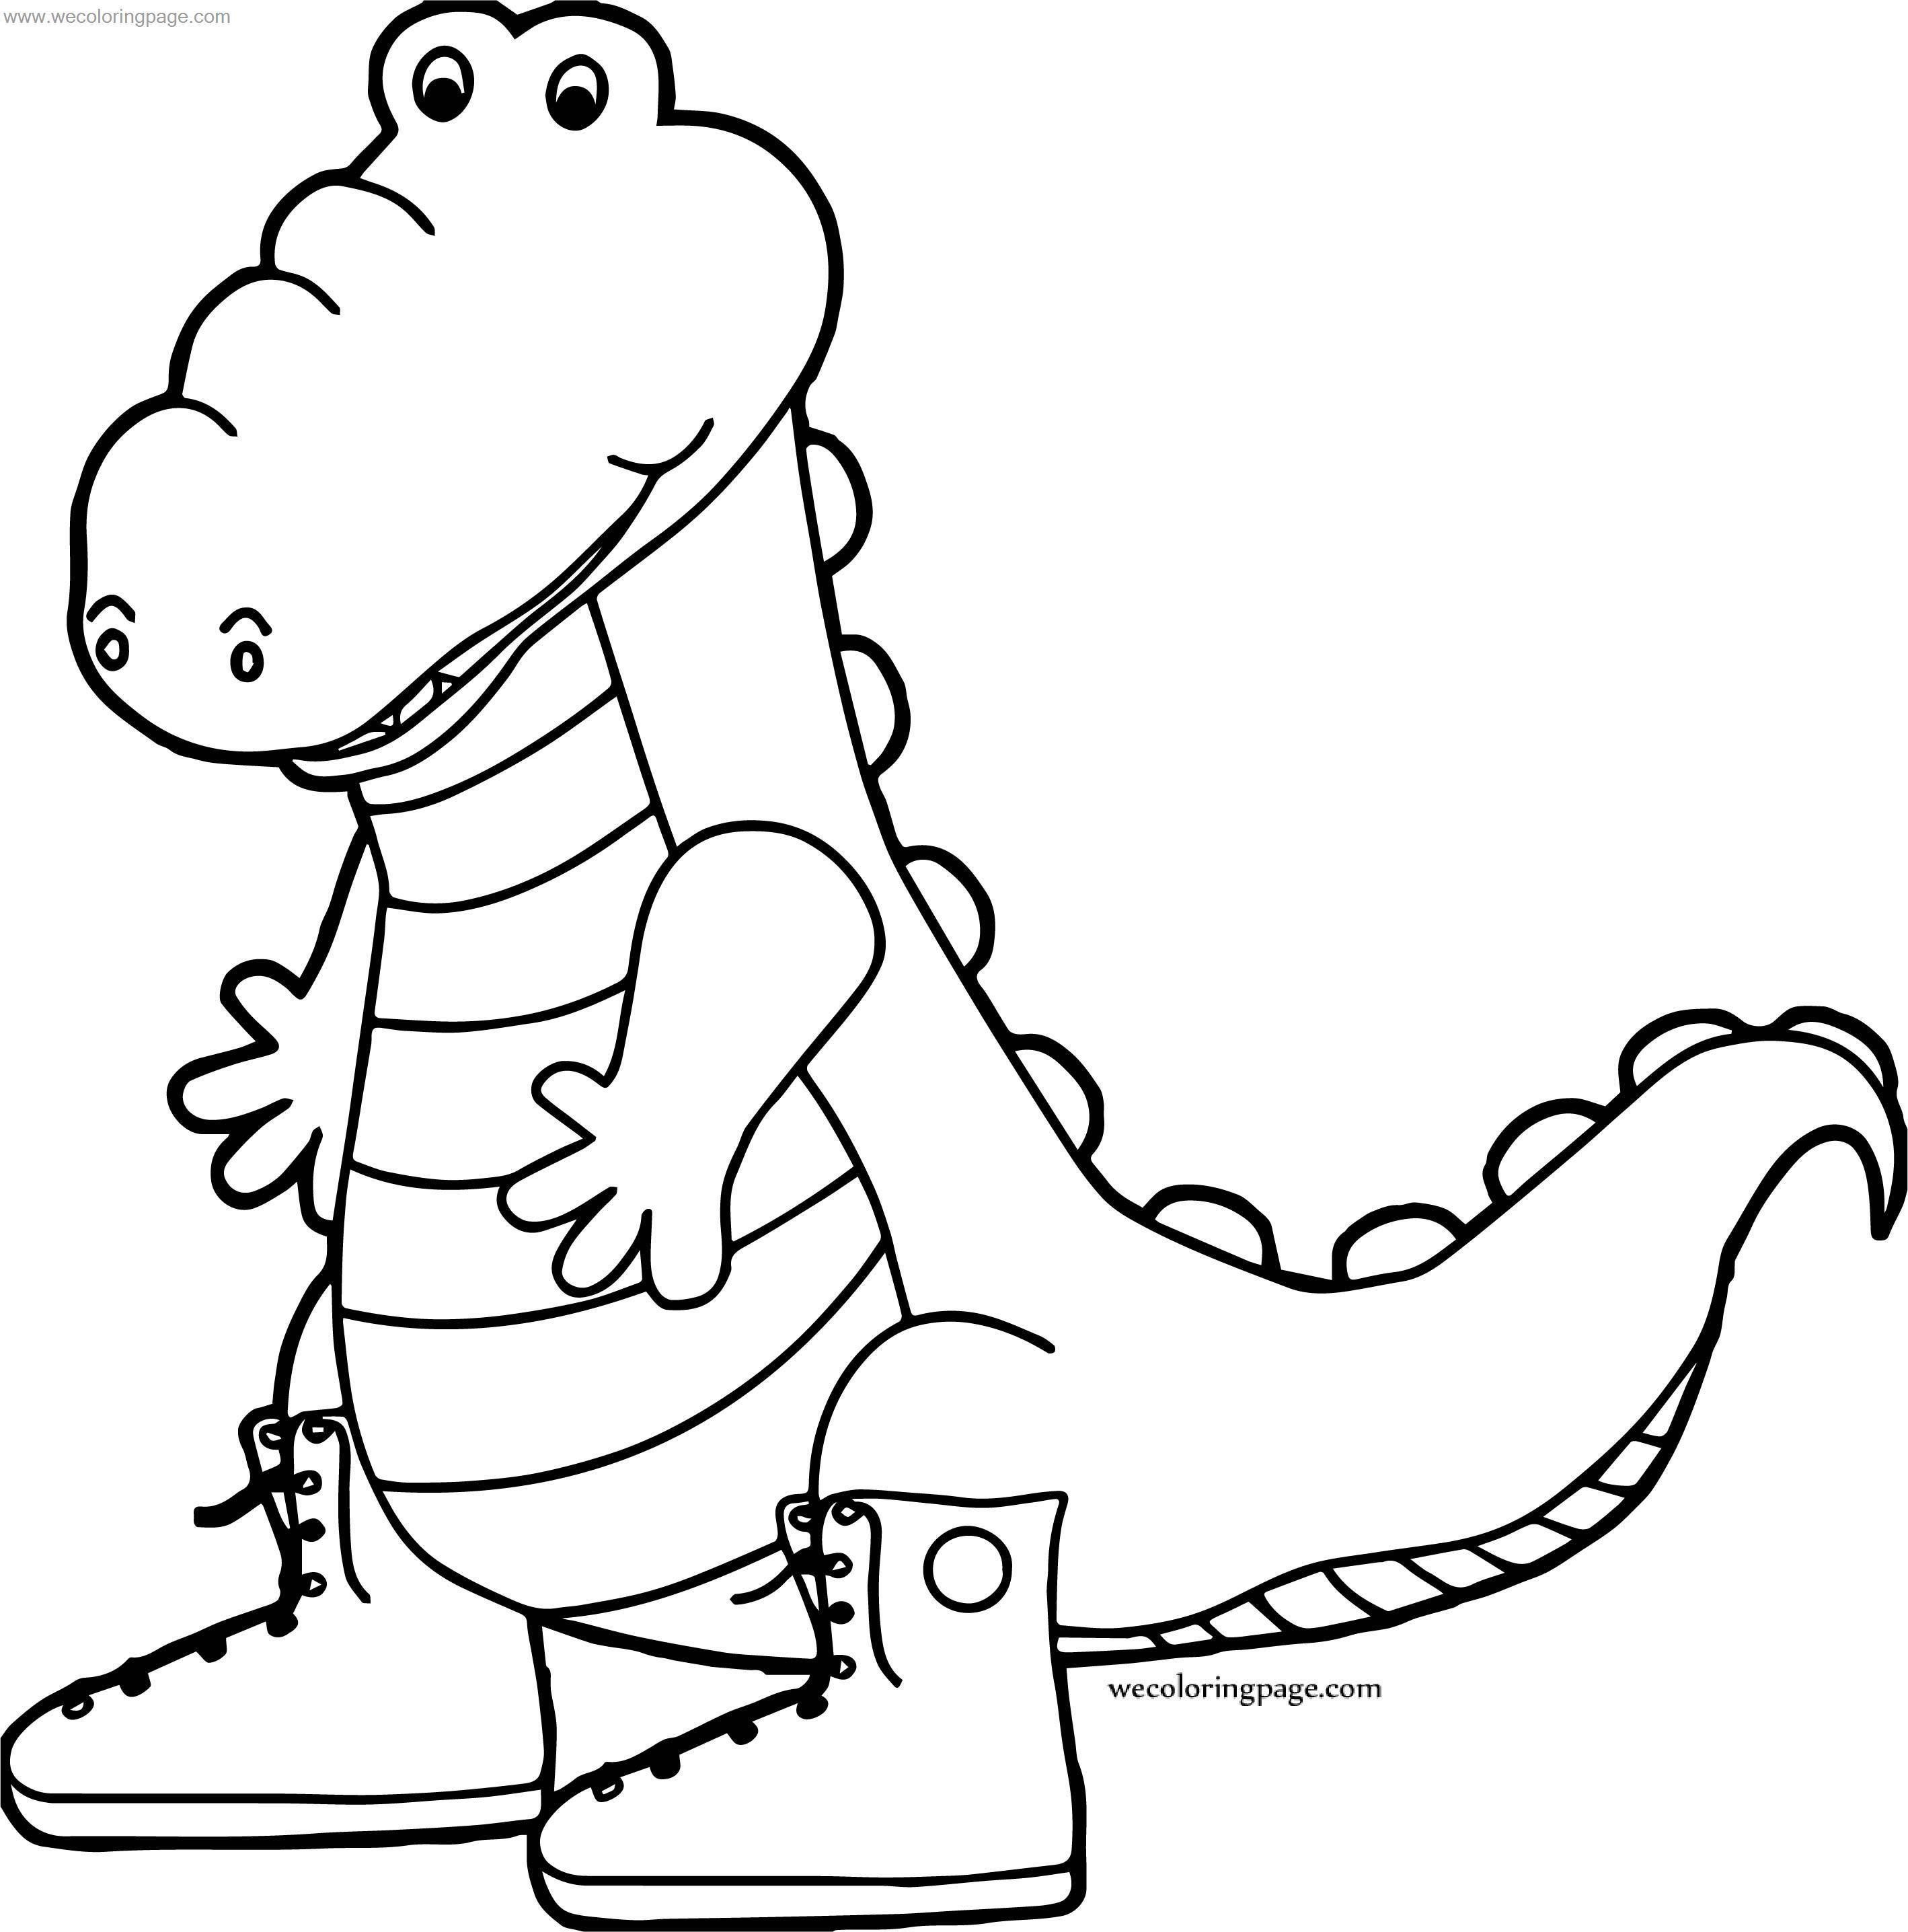 Use Crocodile Alligator Coloring Page